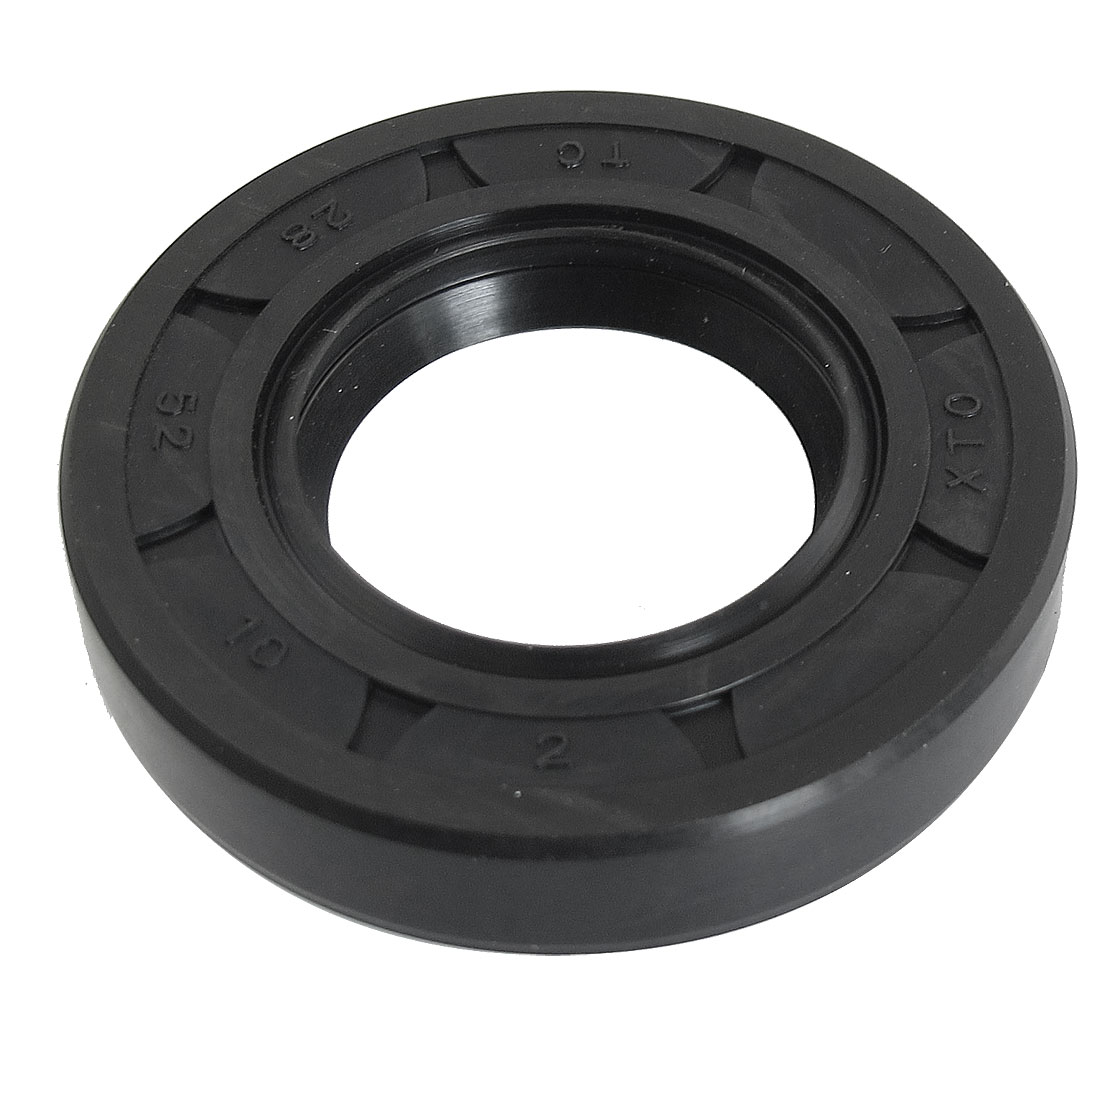 Black Nitrile Rubber Dual Lips Oil Shaft Seal TC 28mm x 52mm x 10mm